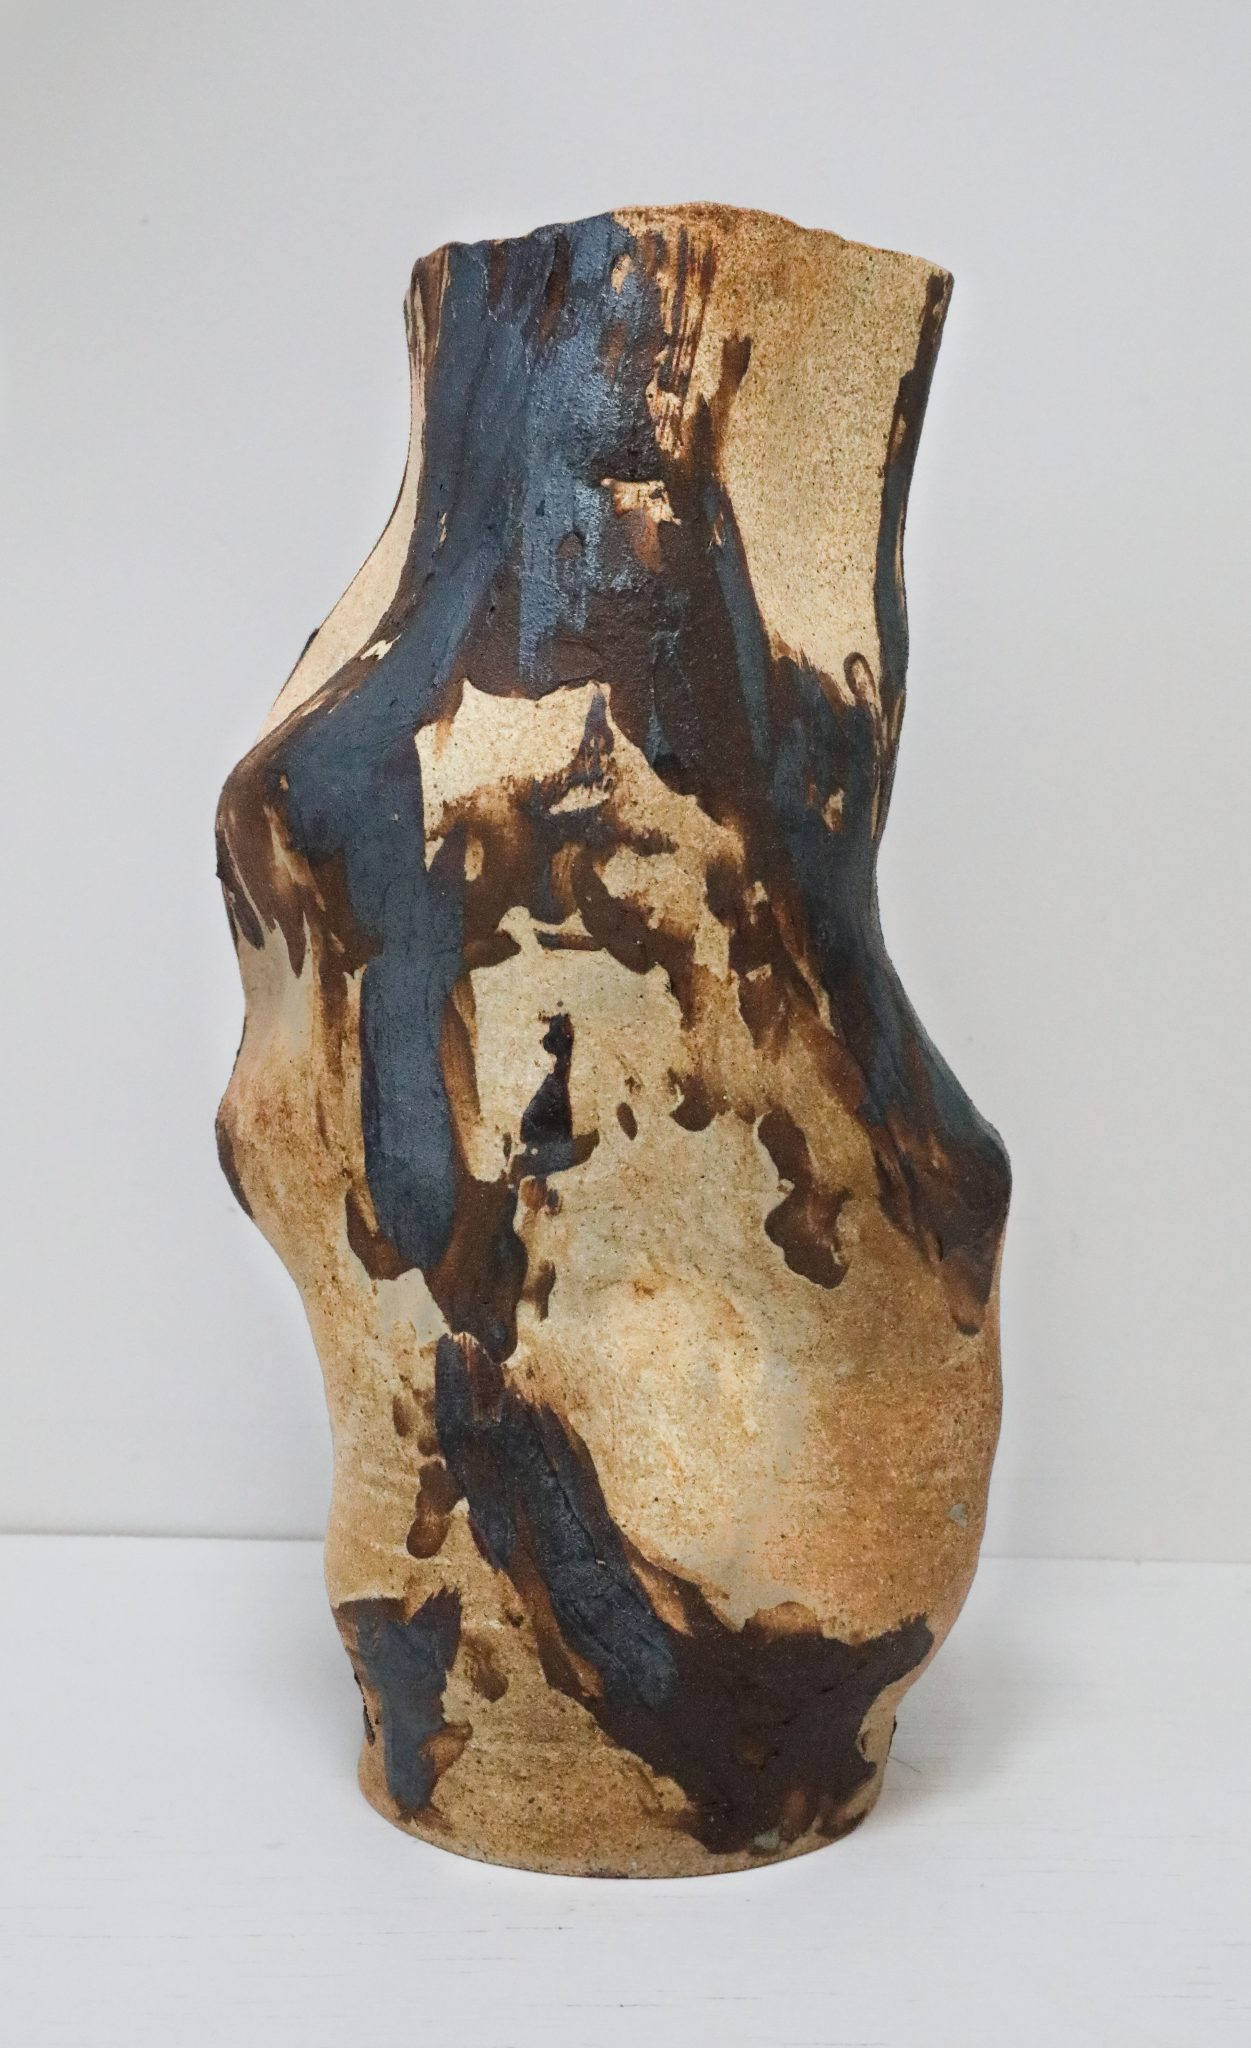 Abstract Vase by Tea Wallmark